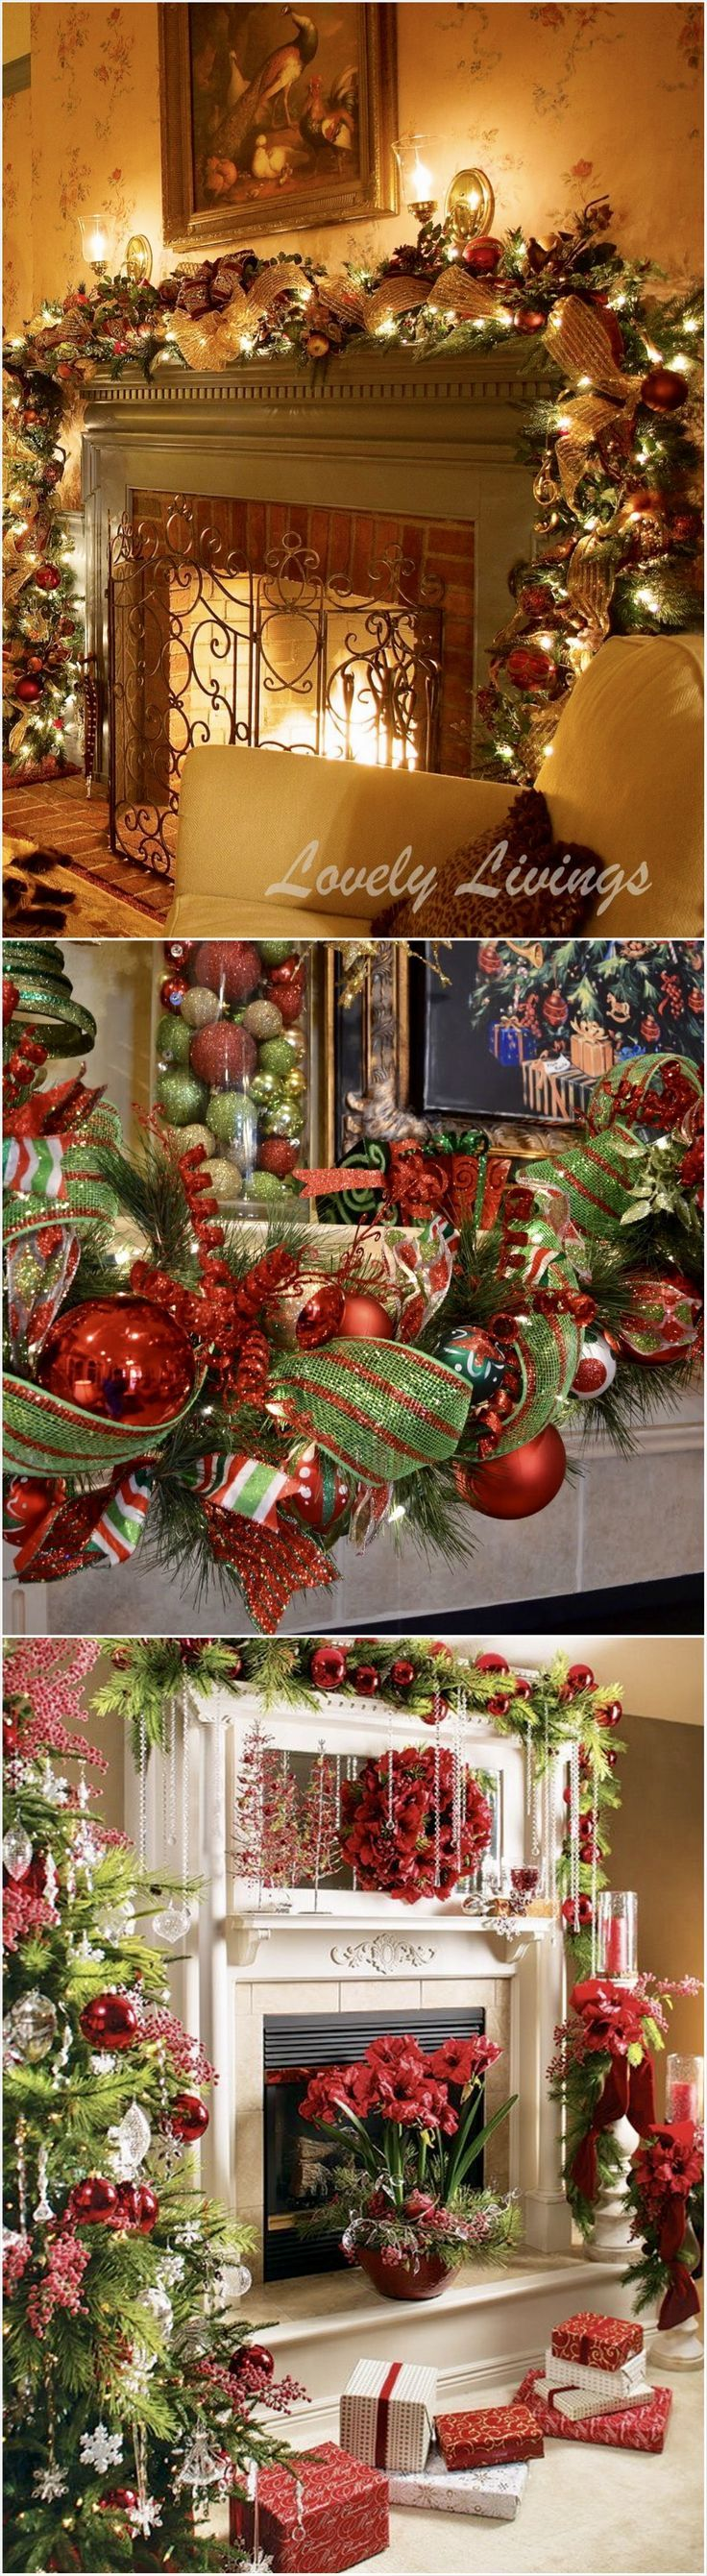 52 Stunning Christmas Mantel Decorating Ideas